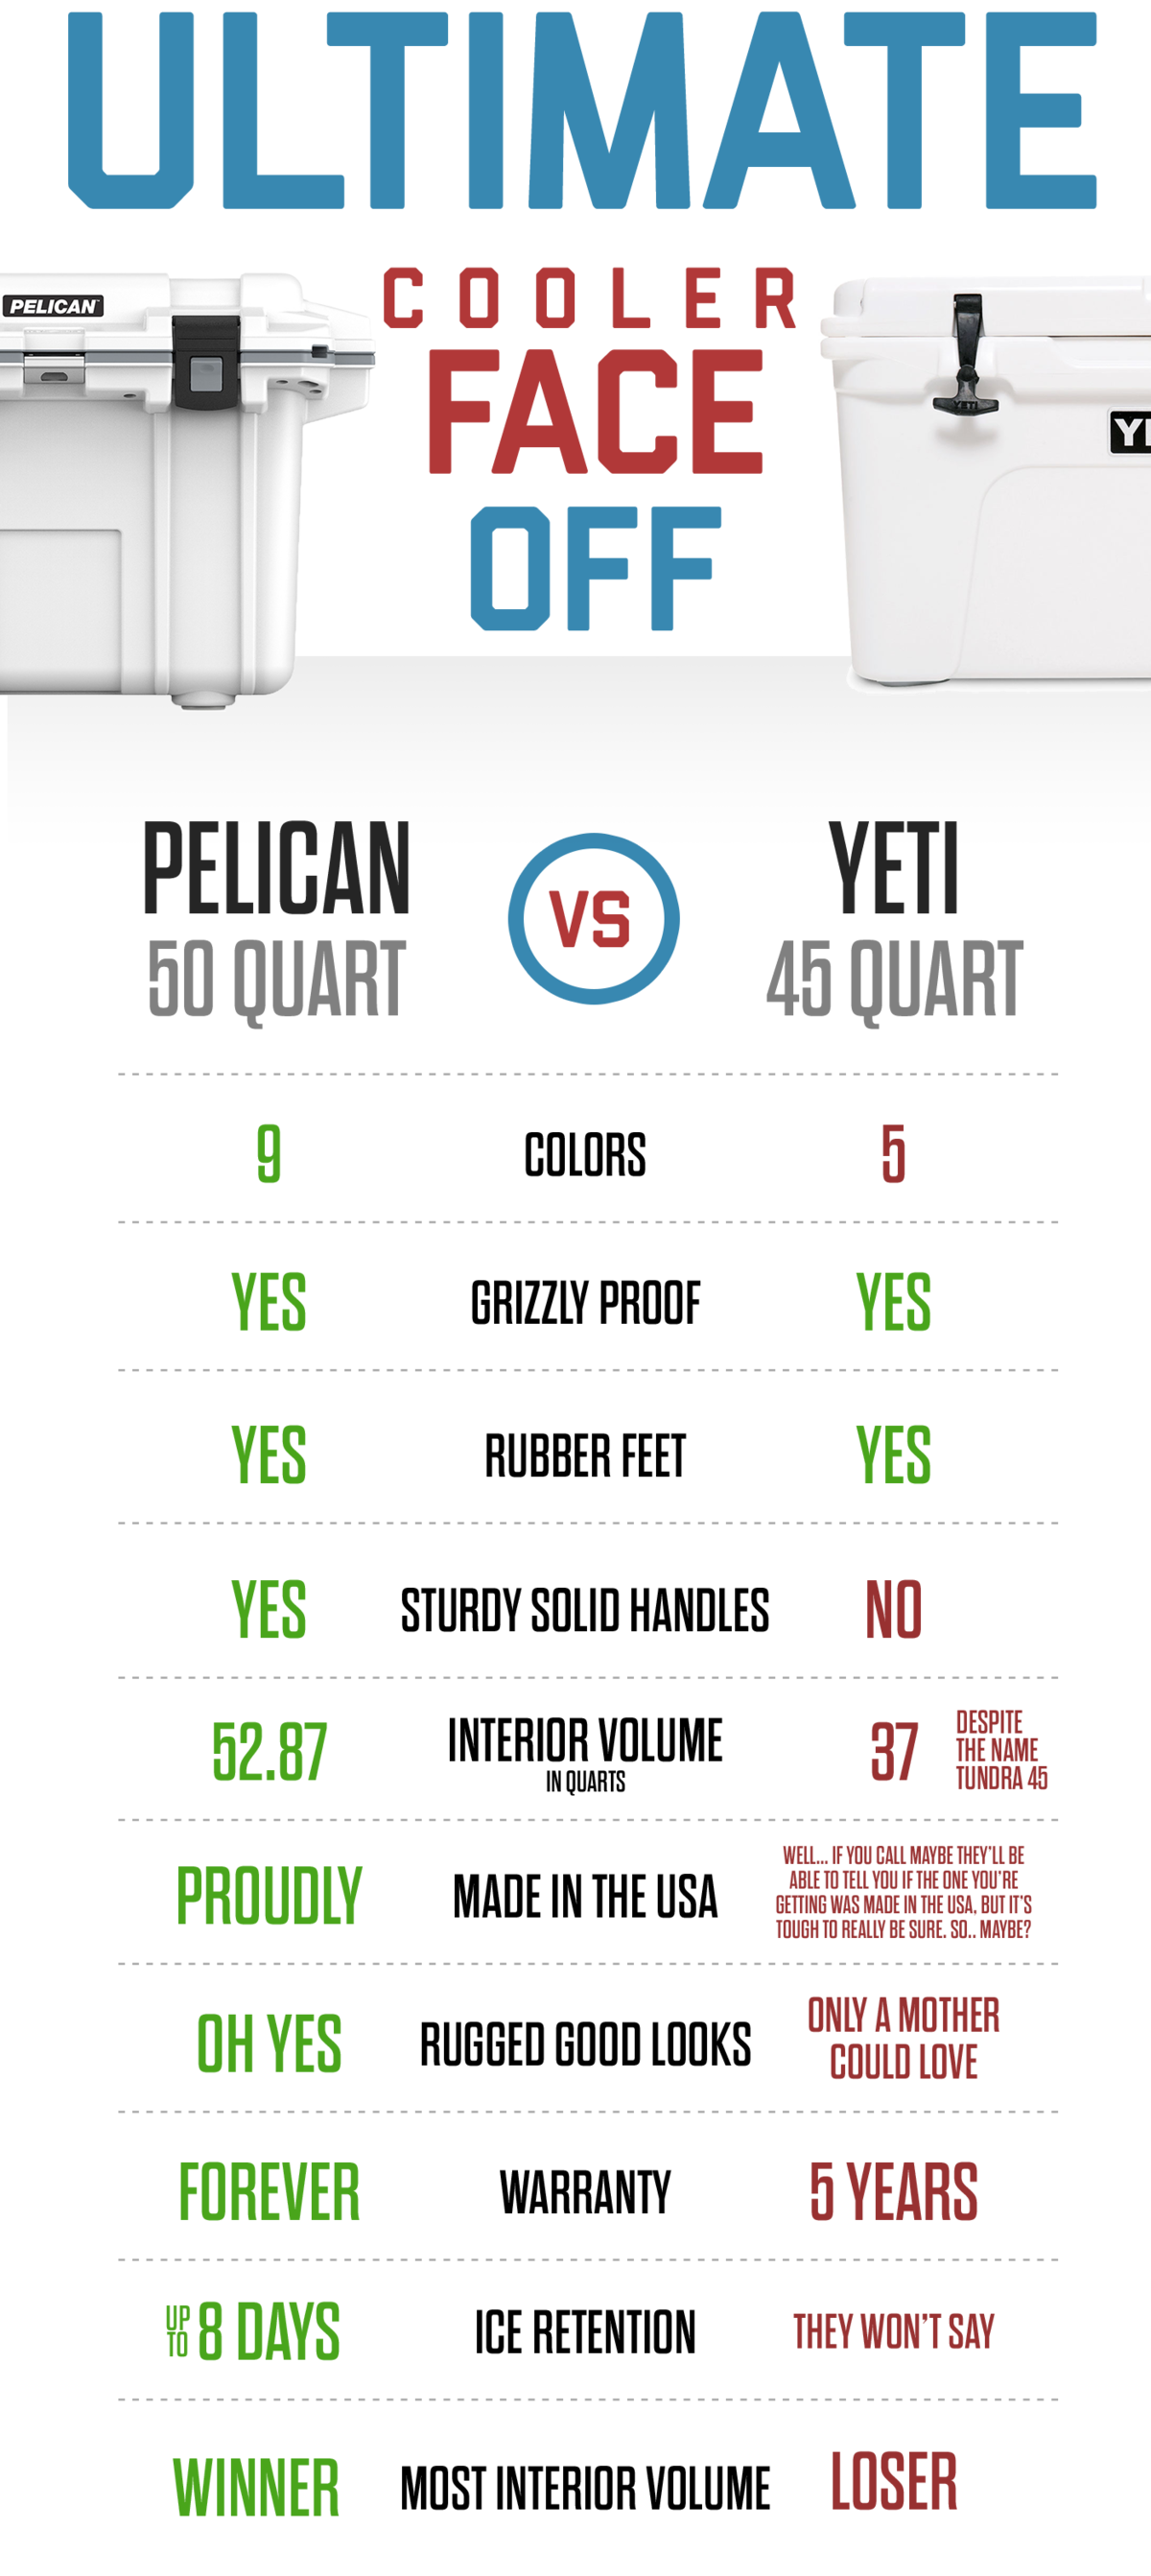 Pelican vs. Yeti. Which is better?